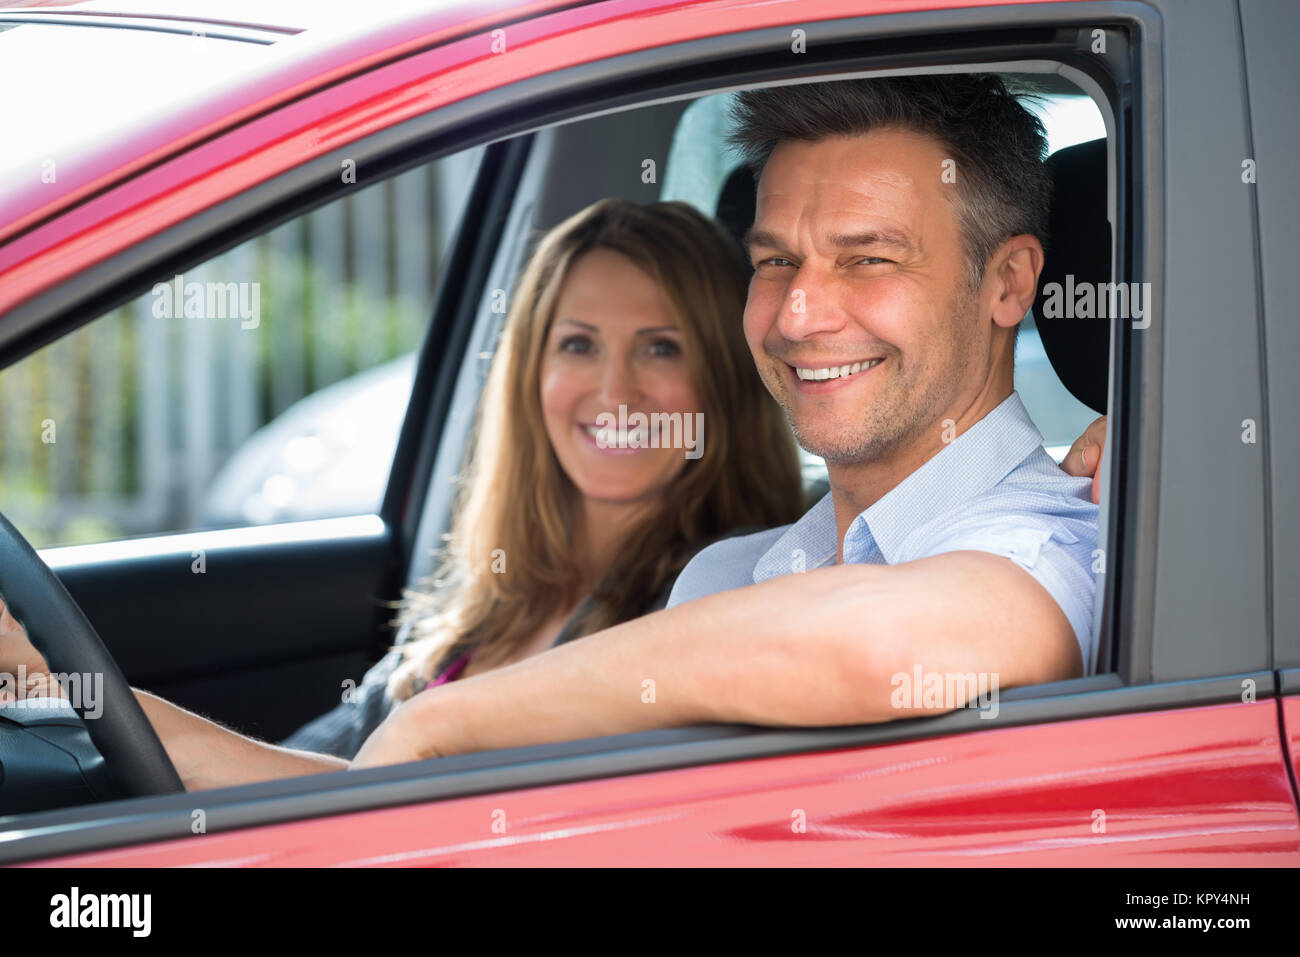 Couple Sitting Inside The Car - Stock Image